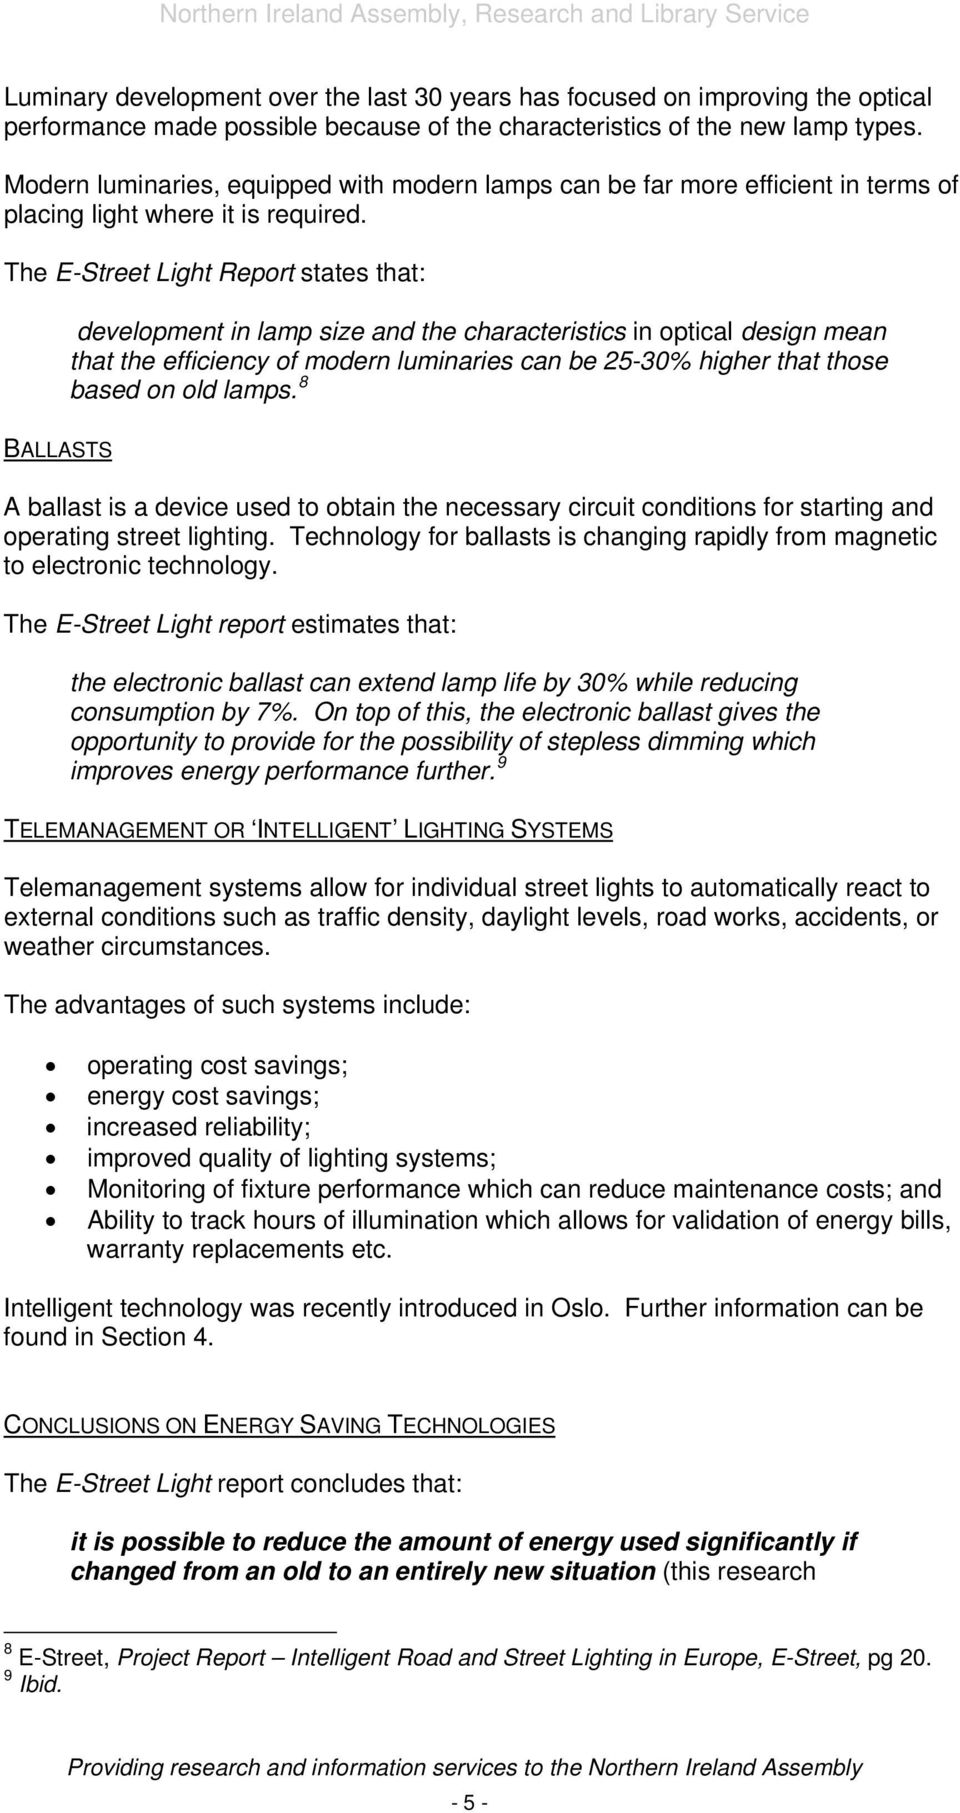 The E-Street Light Report states that: BALLASTS development in lamp size and the characteristics in optical design mean that the efficiency of modern luminaries can be 25-30% higher that those based